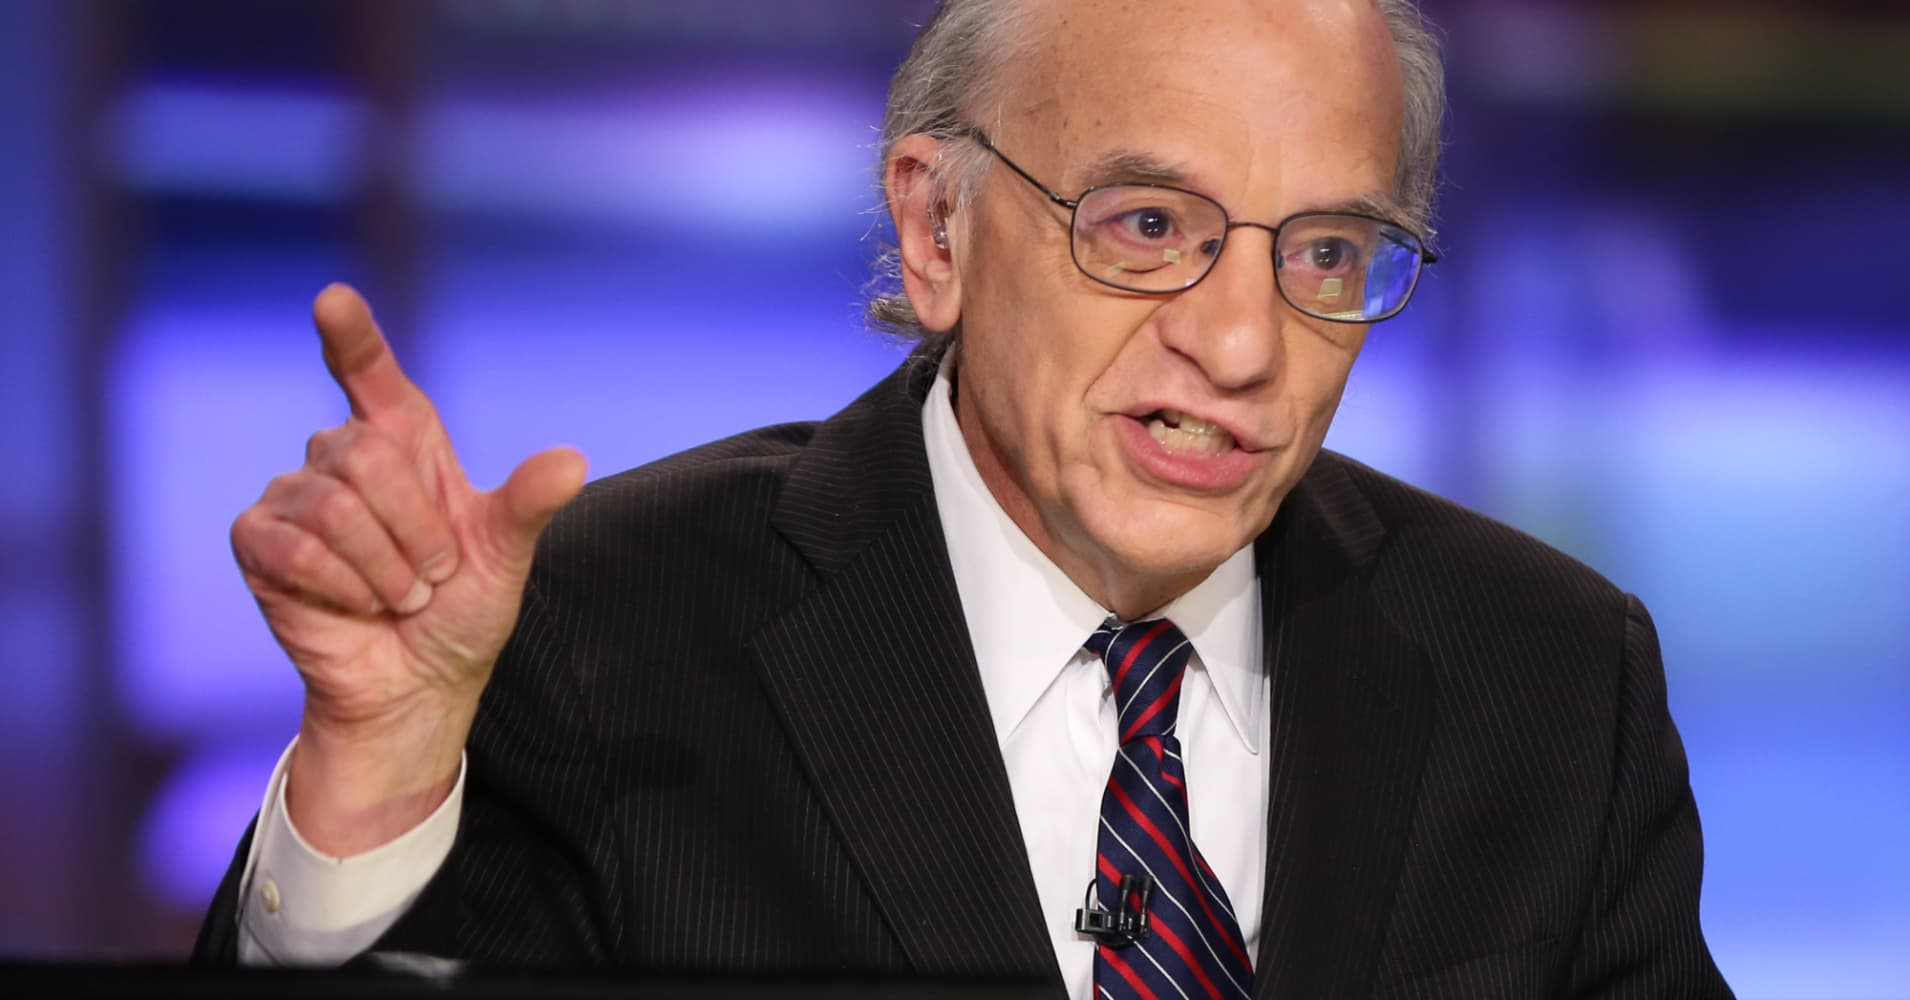 Longtime bull Jeremy Siegel urges caution, says stocks could see a flat 2019